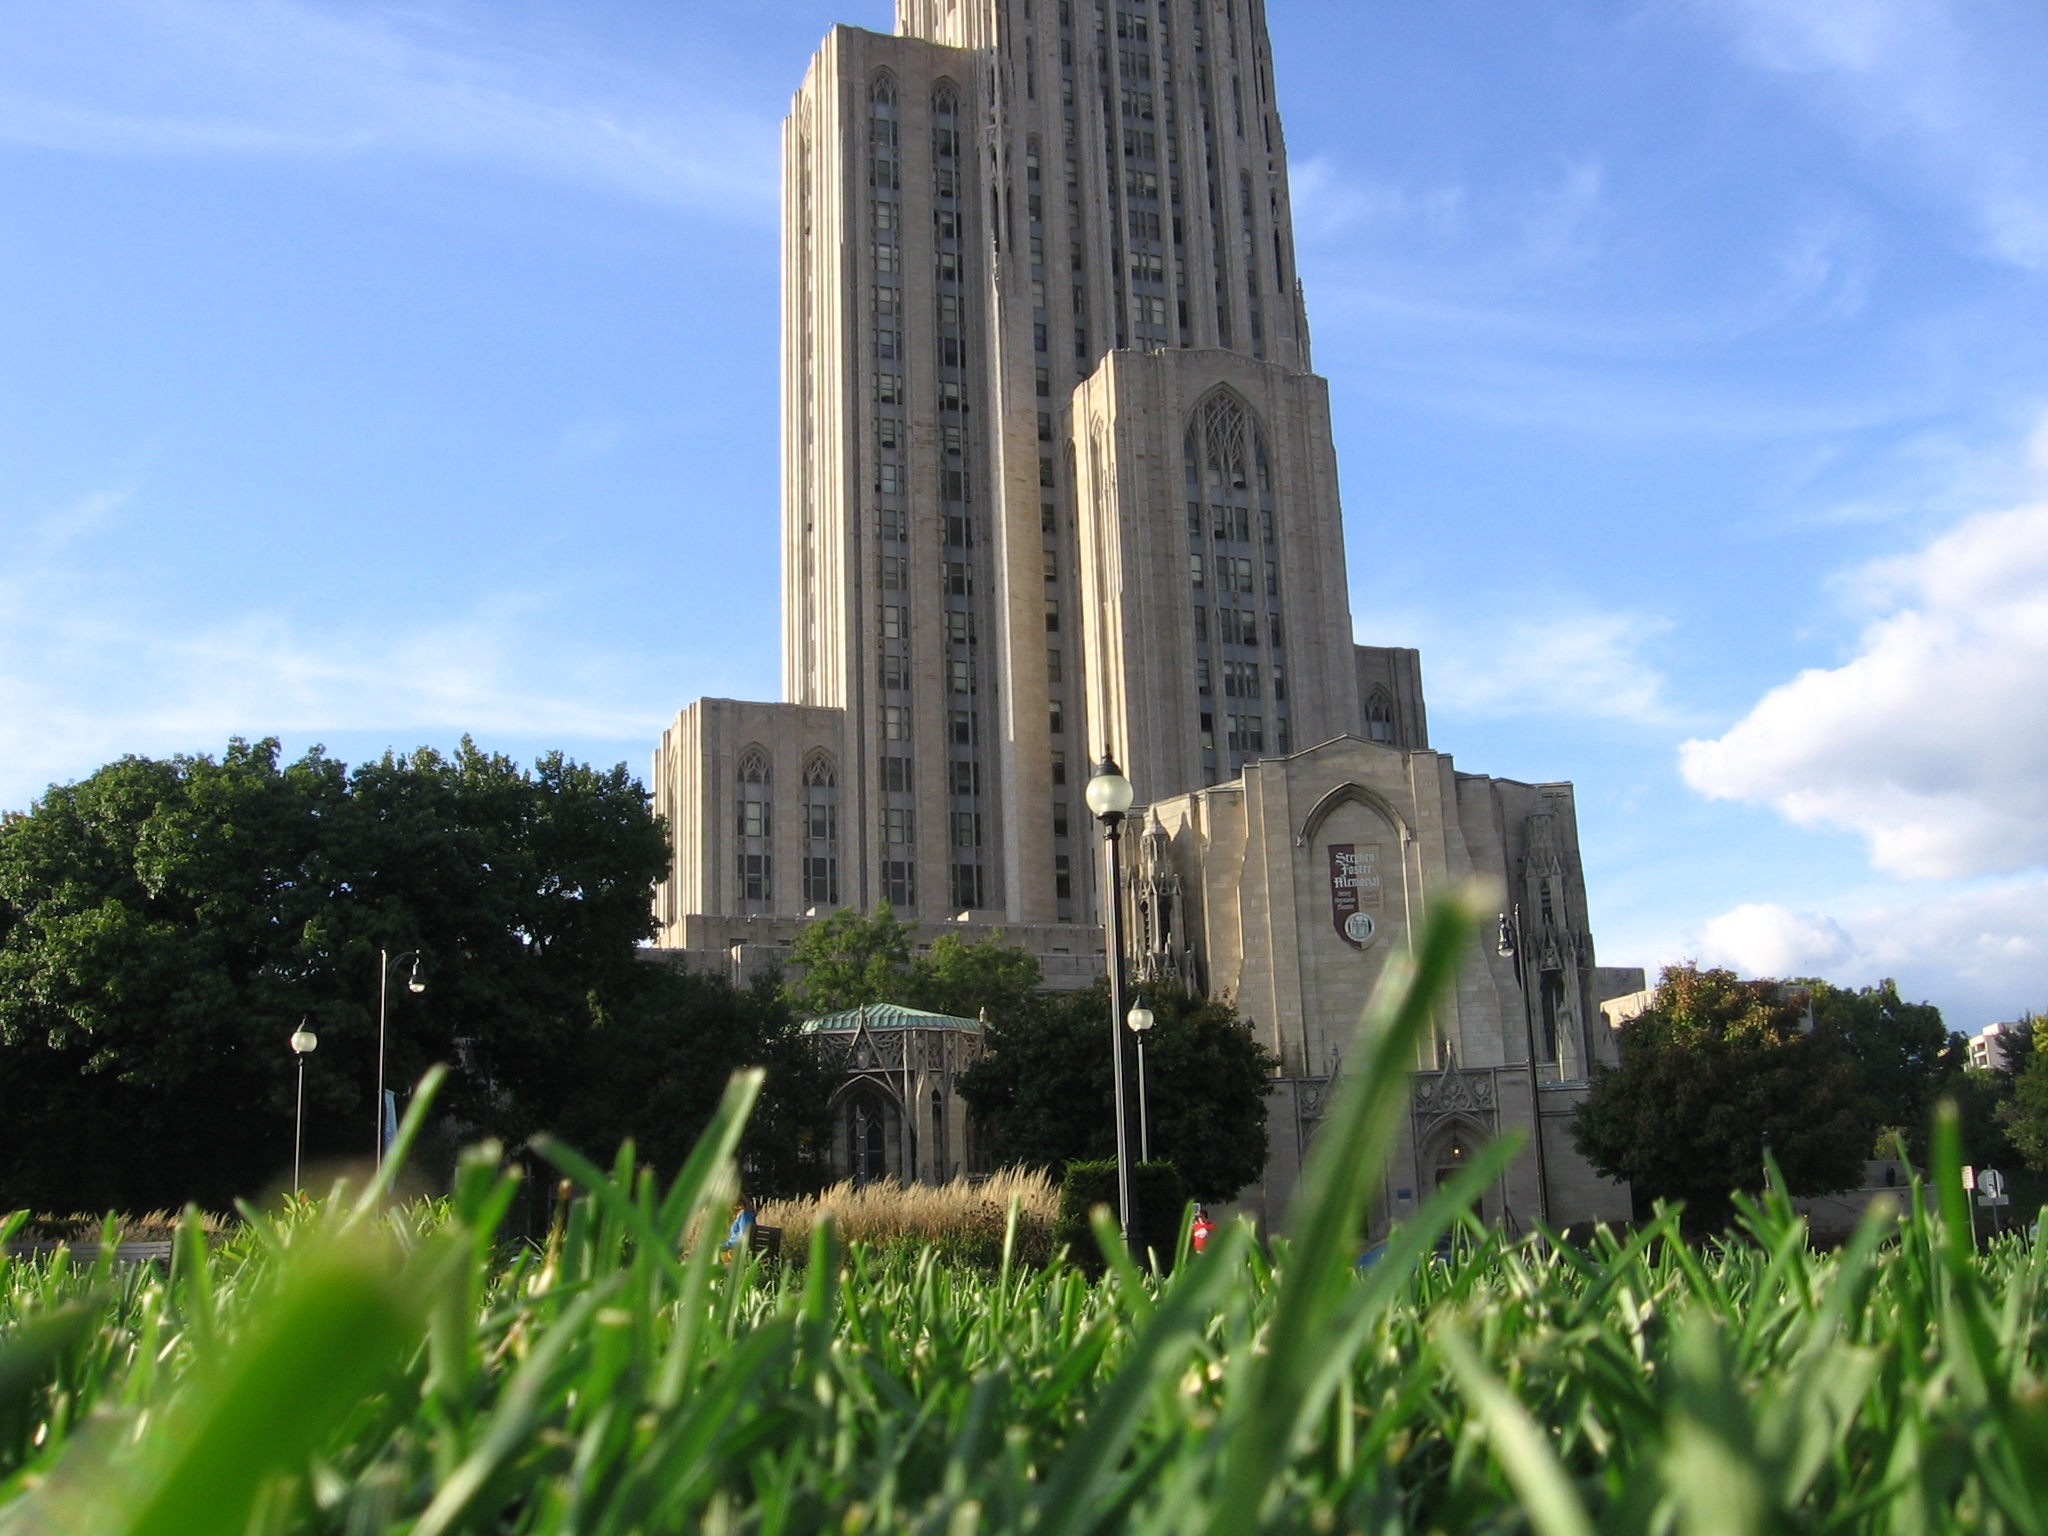 on the University of Pittsburgh, hanging out